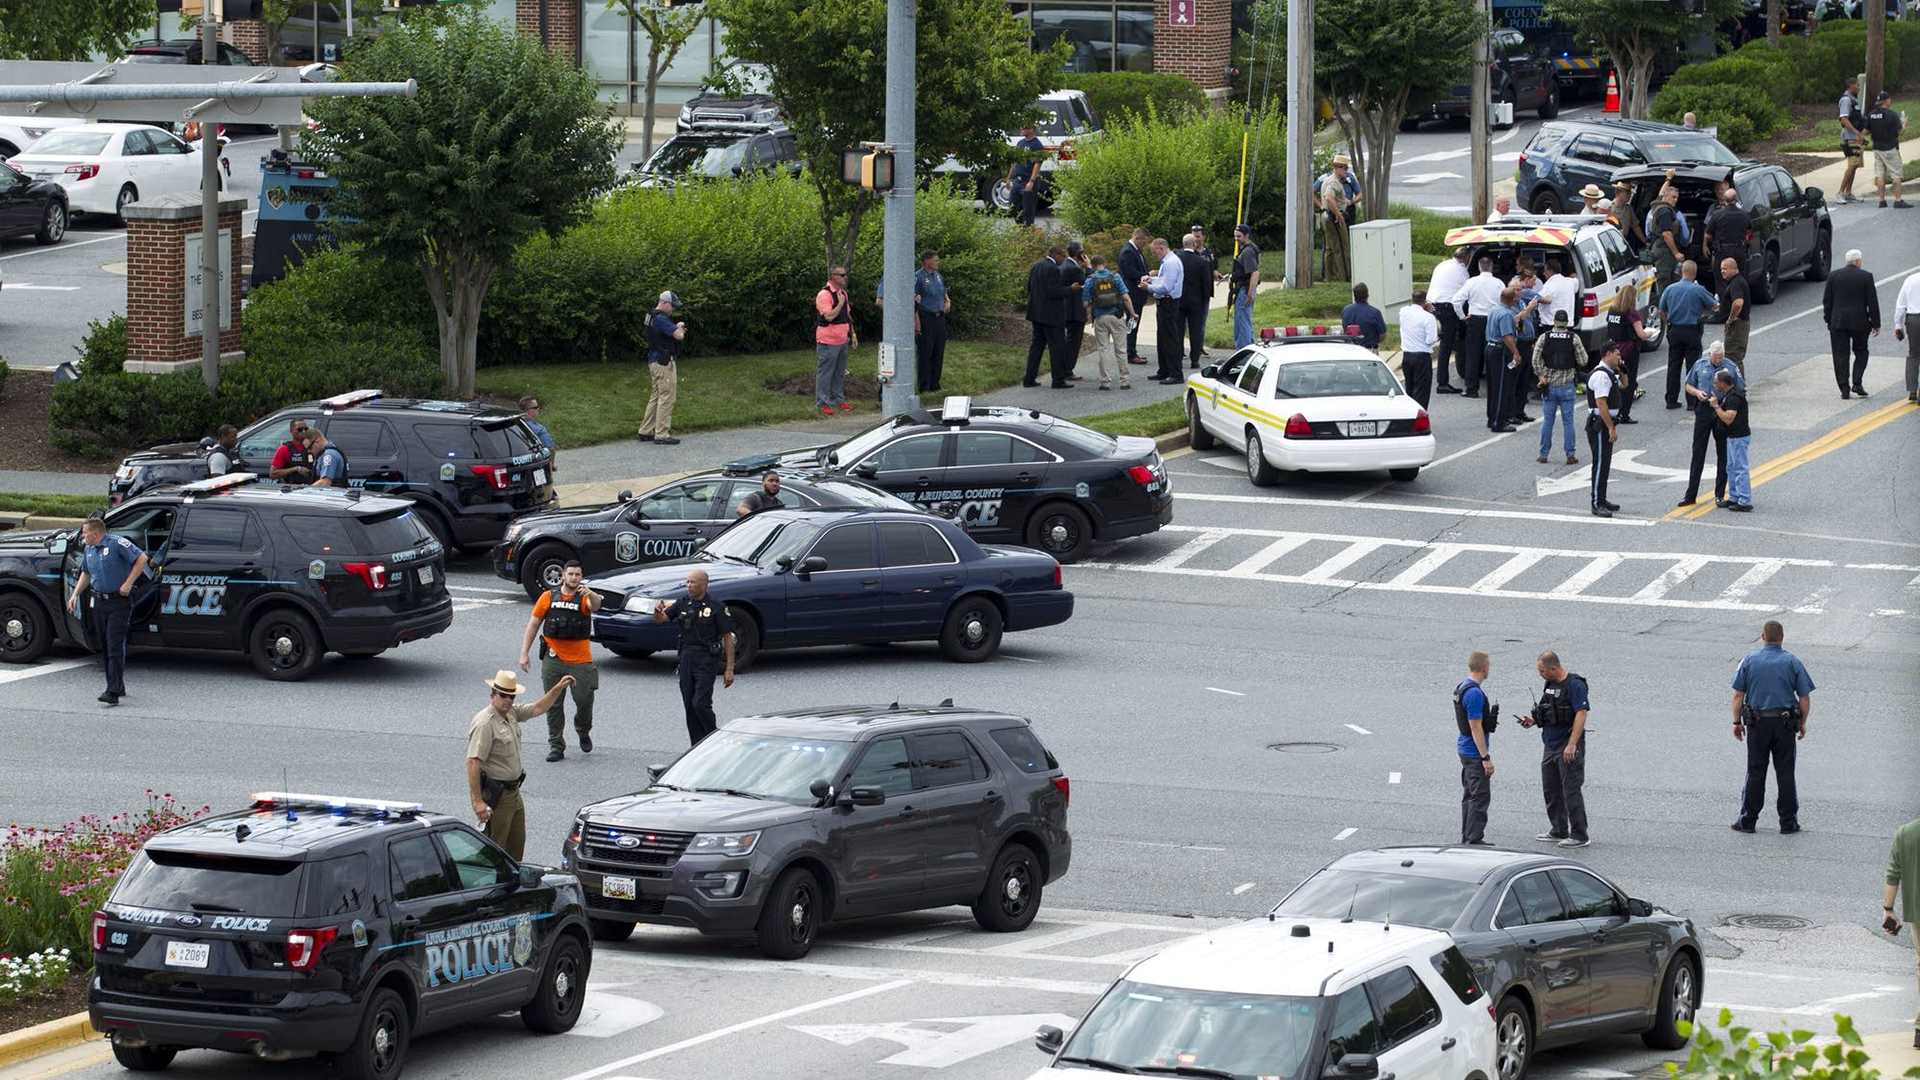 Deadly Shooting at Capital Gazette